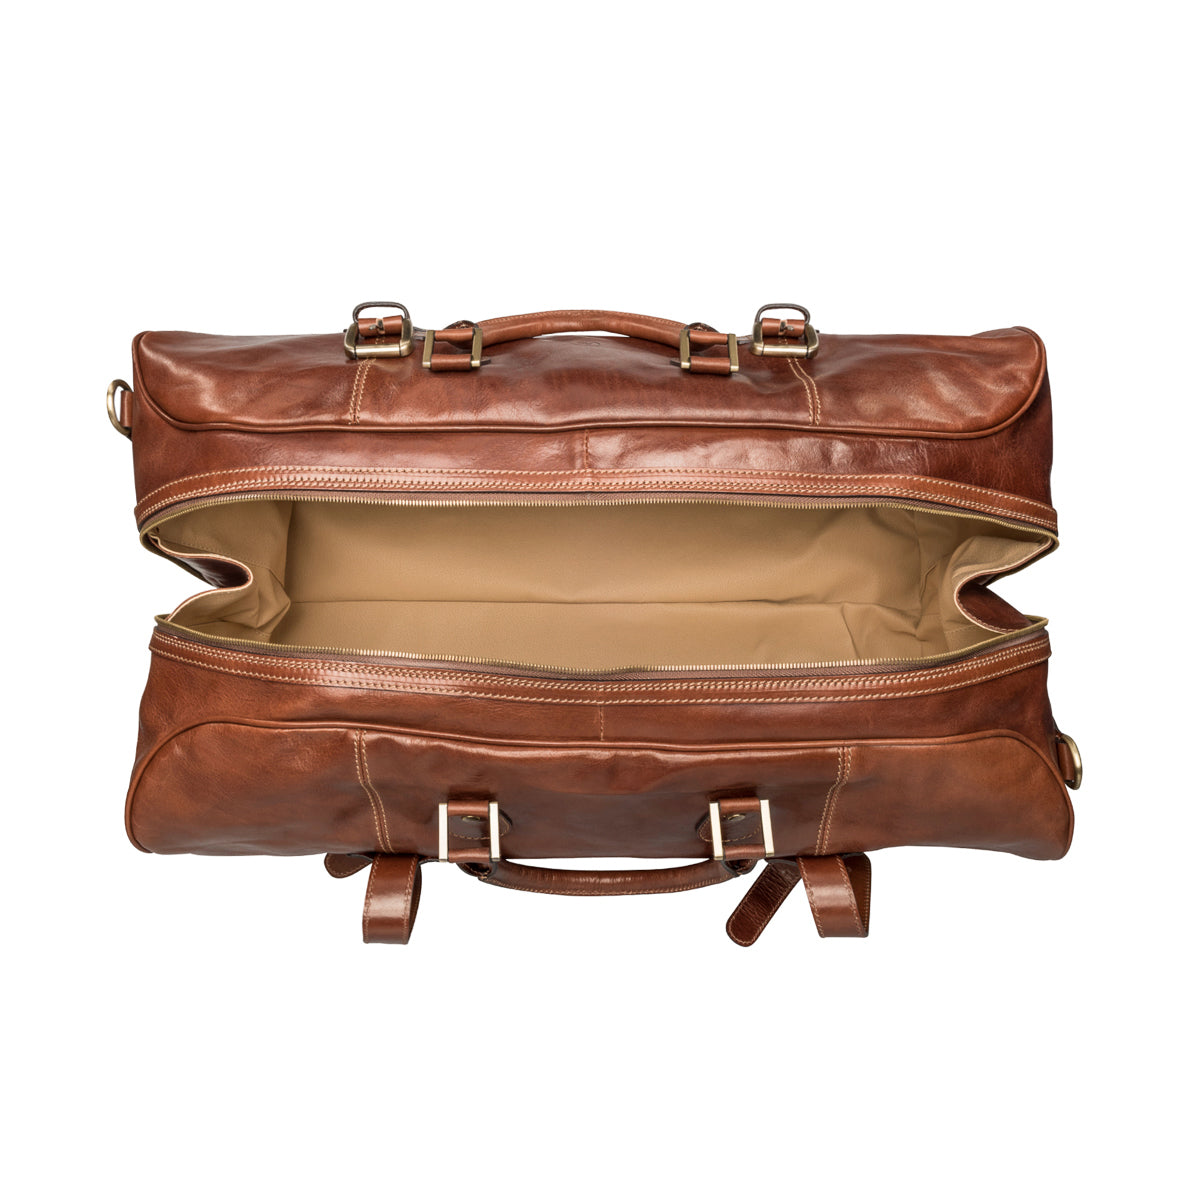 Image 6 of the Extra Large 'Flero' Chestnut Veg-Tanned Leather Holdall